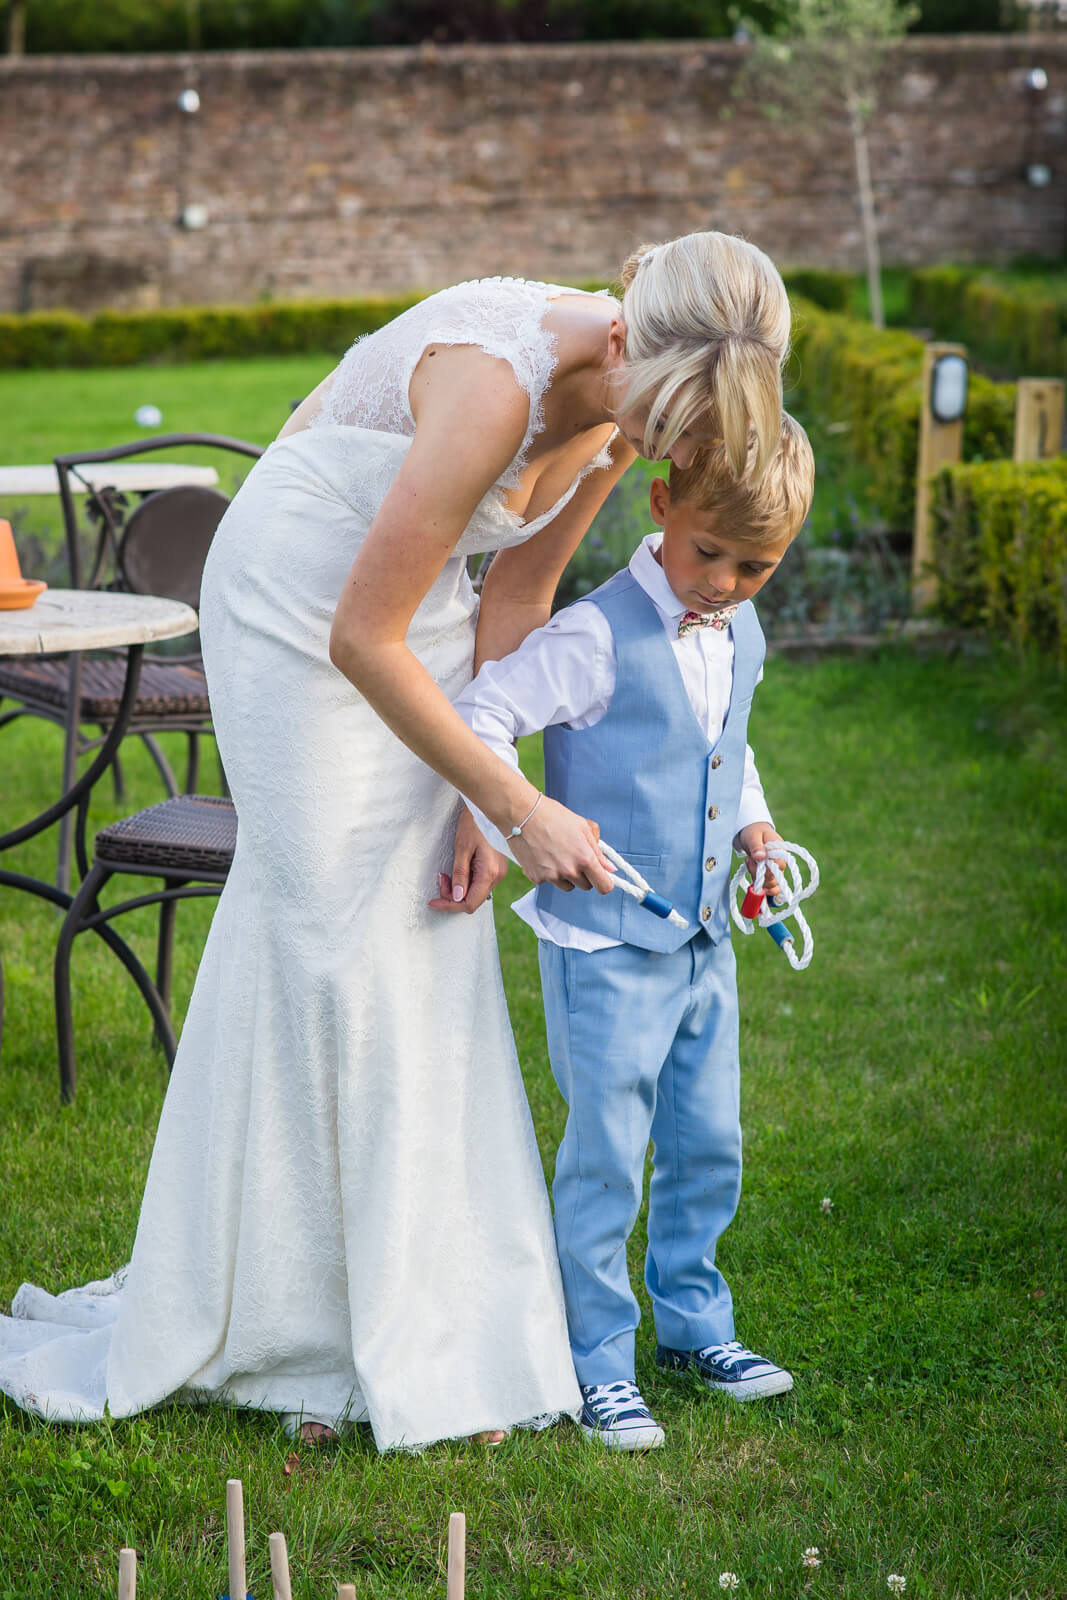 Bride and son playing hoopla together